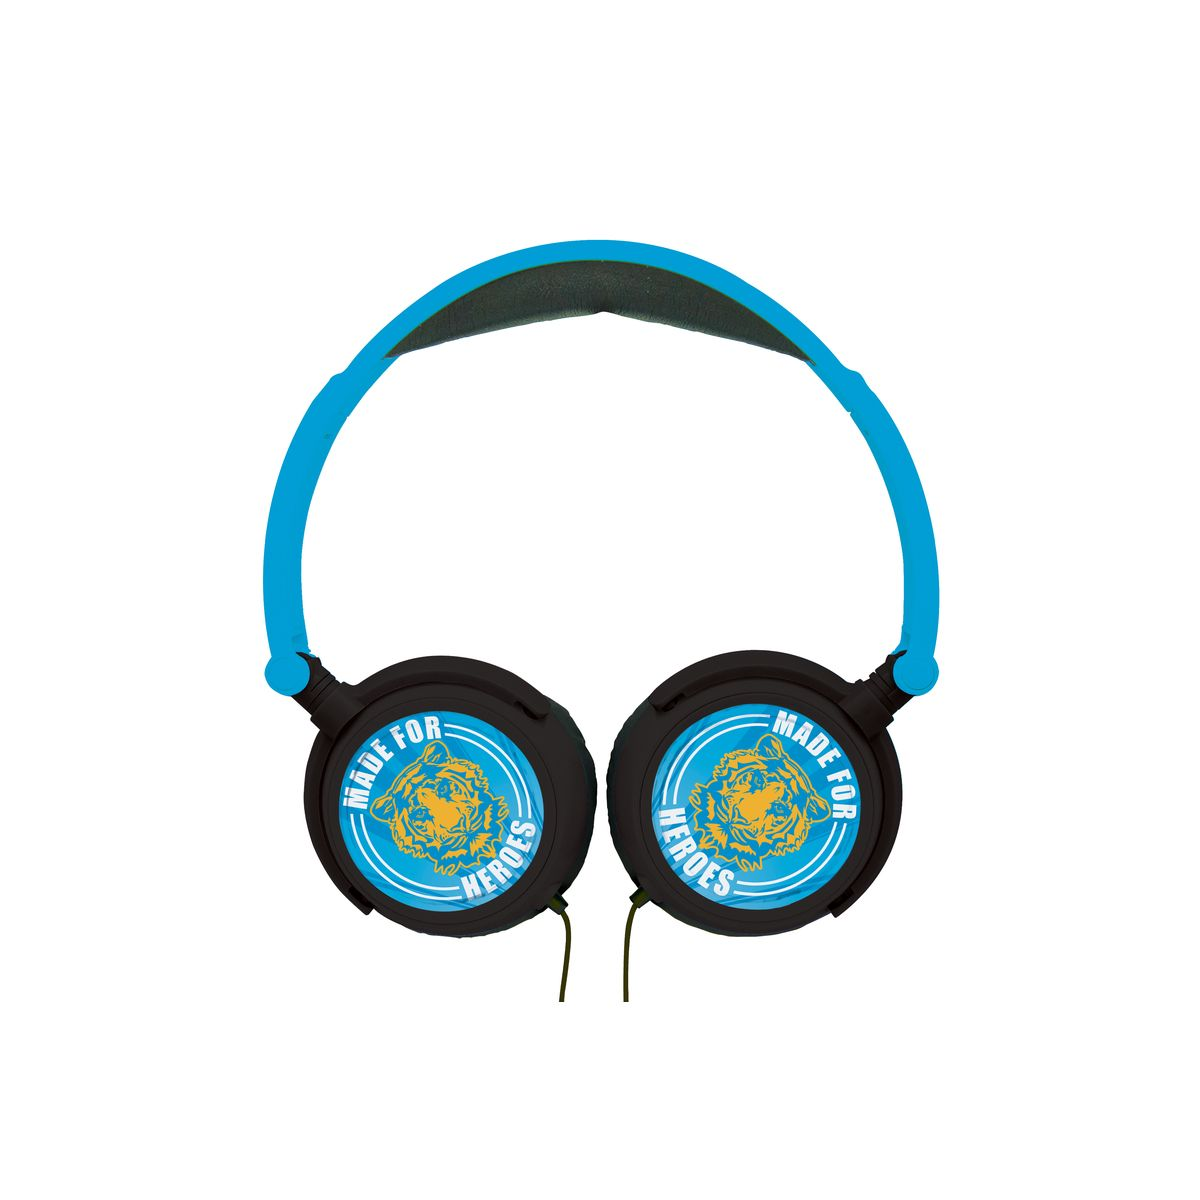 Casque audio Made for heroes - HP017BLH